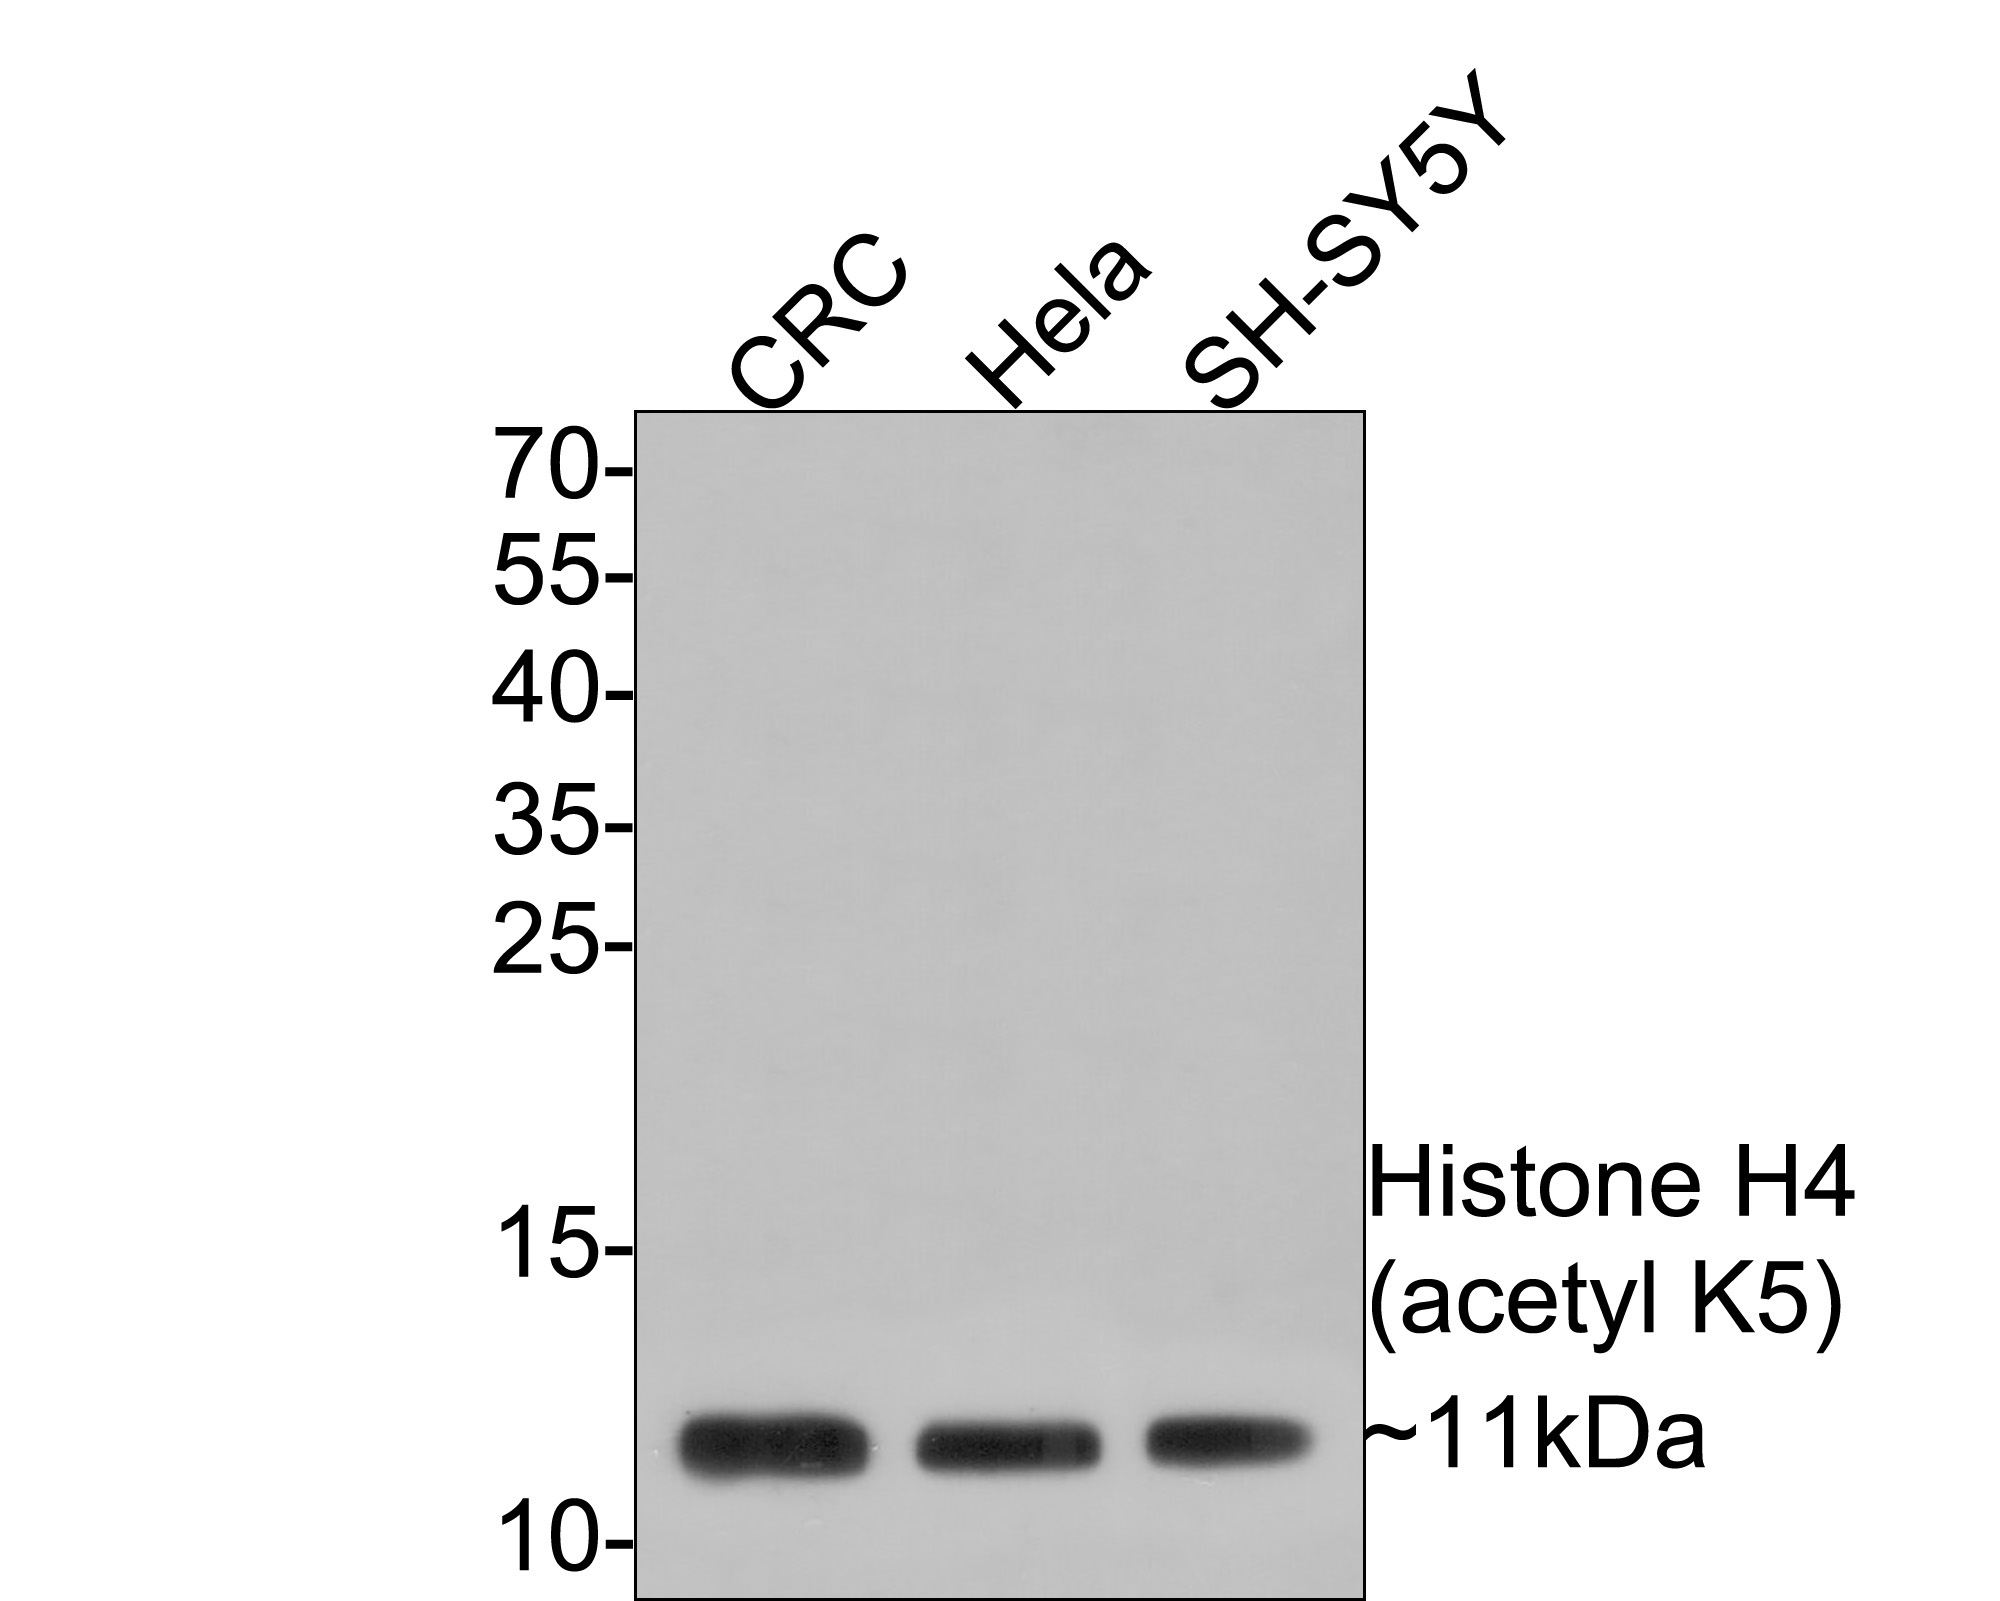 Western blot analysis of Histone H4(acetyl K5) on different lysates. Proteins were transferred to a PVDF membrane and blocked with 5% BSA in PBS for 1 hour at room temperature. The primary antibody (ET1602-40, 1/500) was used in 5% BSA at room temperature for 2 hours. Goat Anti-Rabbit IgG - HRP Secondary Antibody (HA1001) at 1:5,000 dilution was used for 1 hour at room temperature.<br /> Positive control: <br /> Lane 1: CRC cell lysate<br /> Lane 2: Hela cell lysate<br /> Lane 3: SH-SY5Y cell lysate